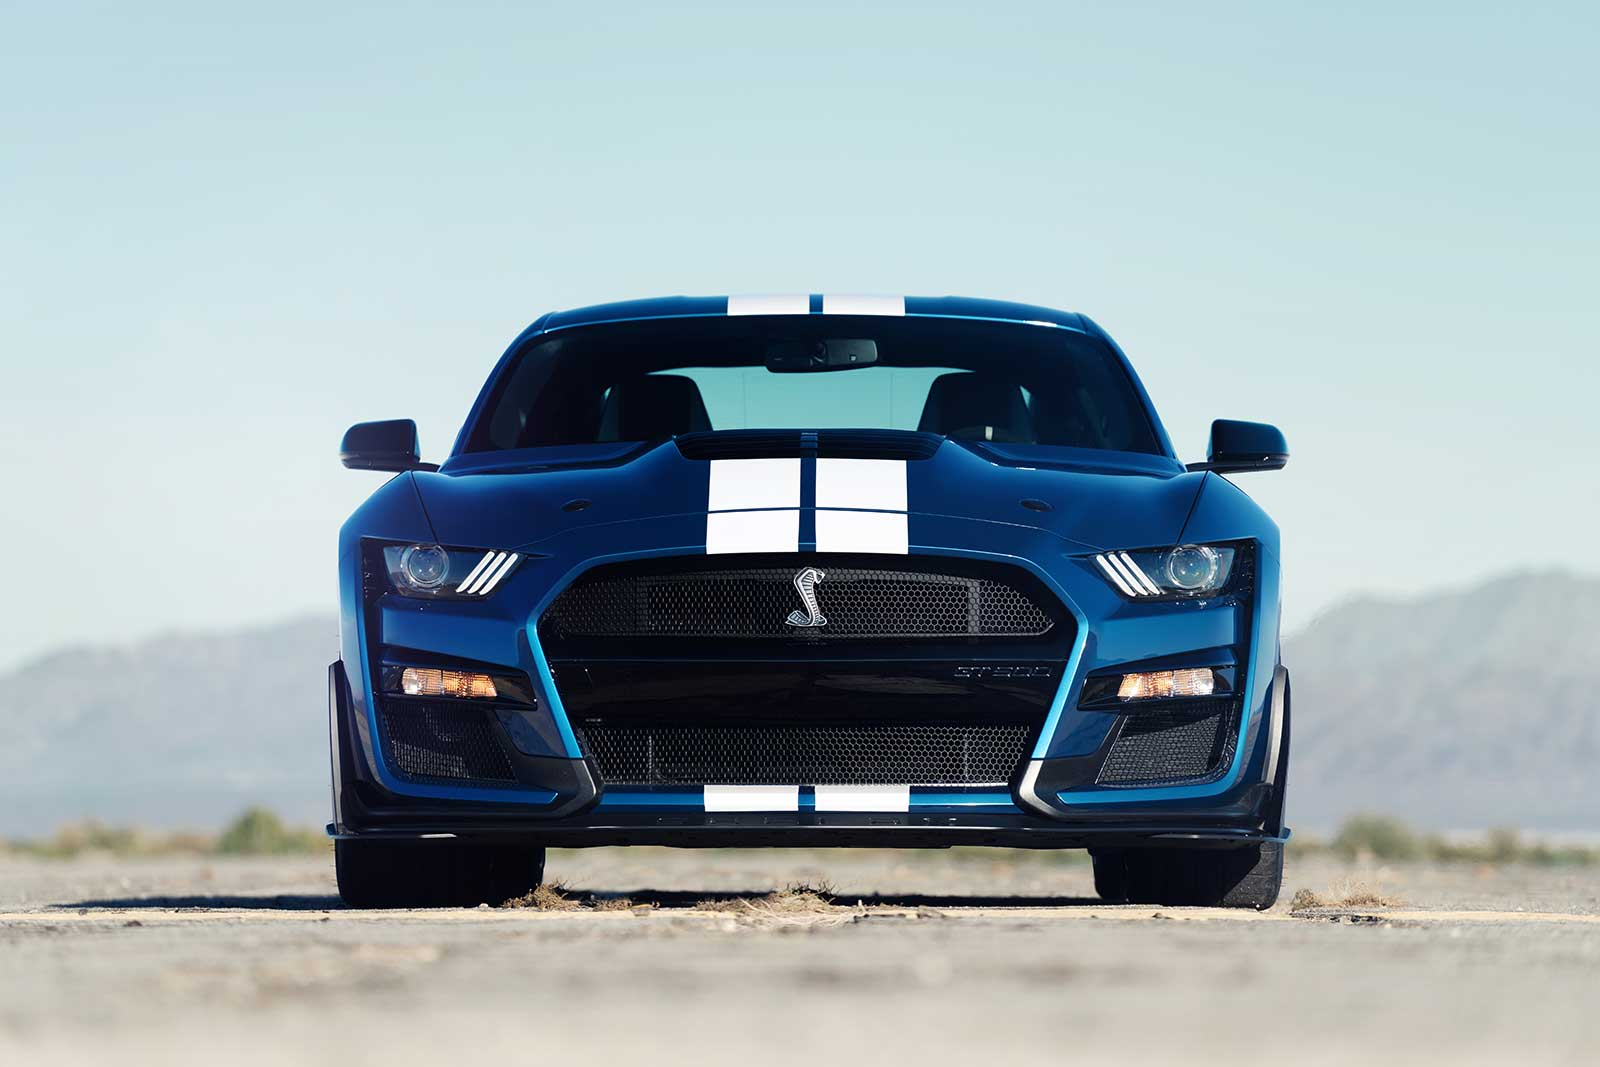 2020 Ford Mustang Shelby Gt500 Has Supercharged V8 More Than 700 Hp